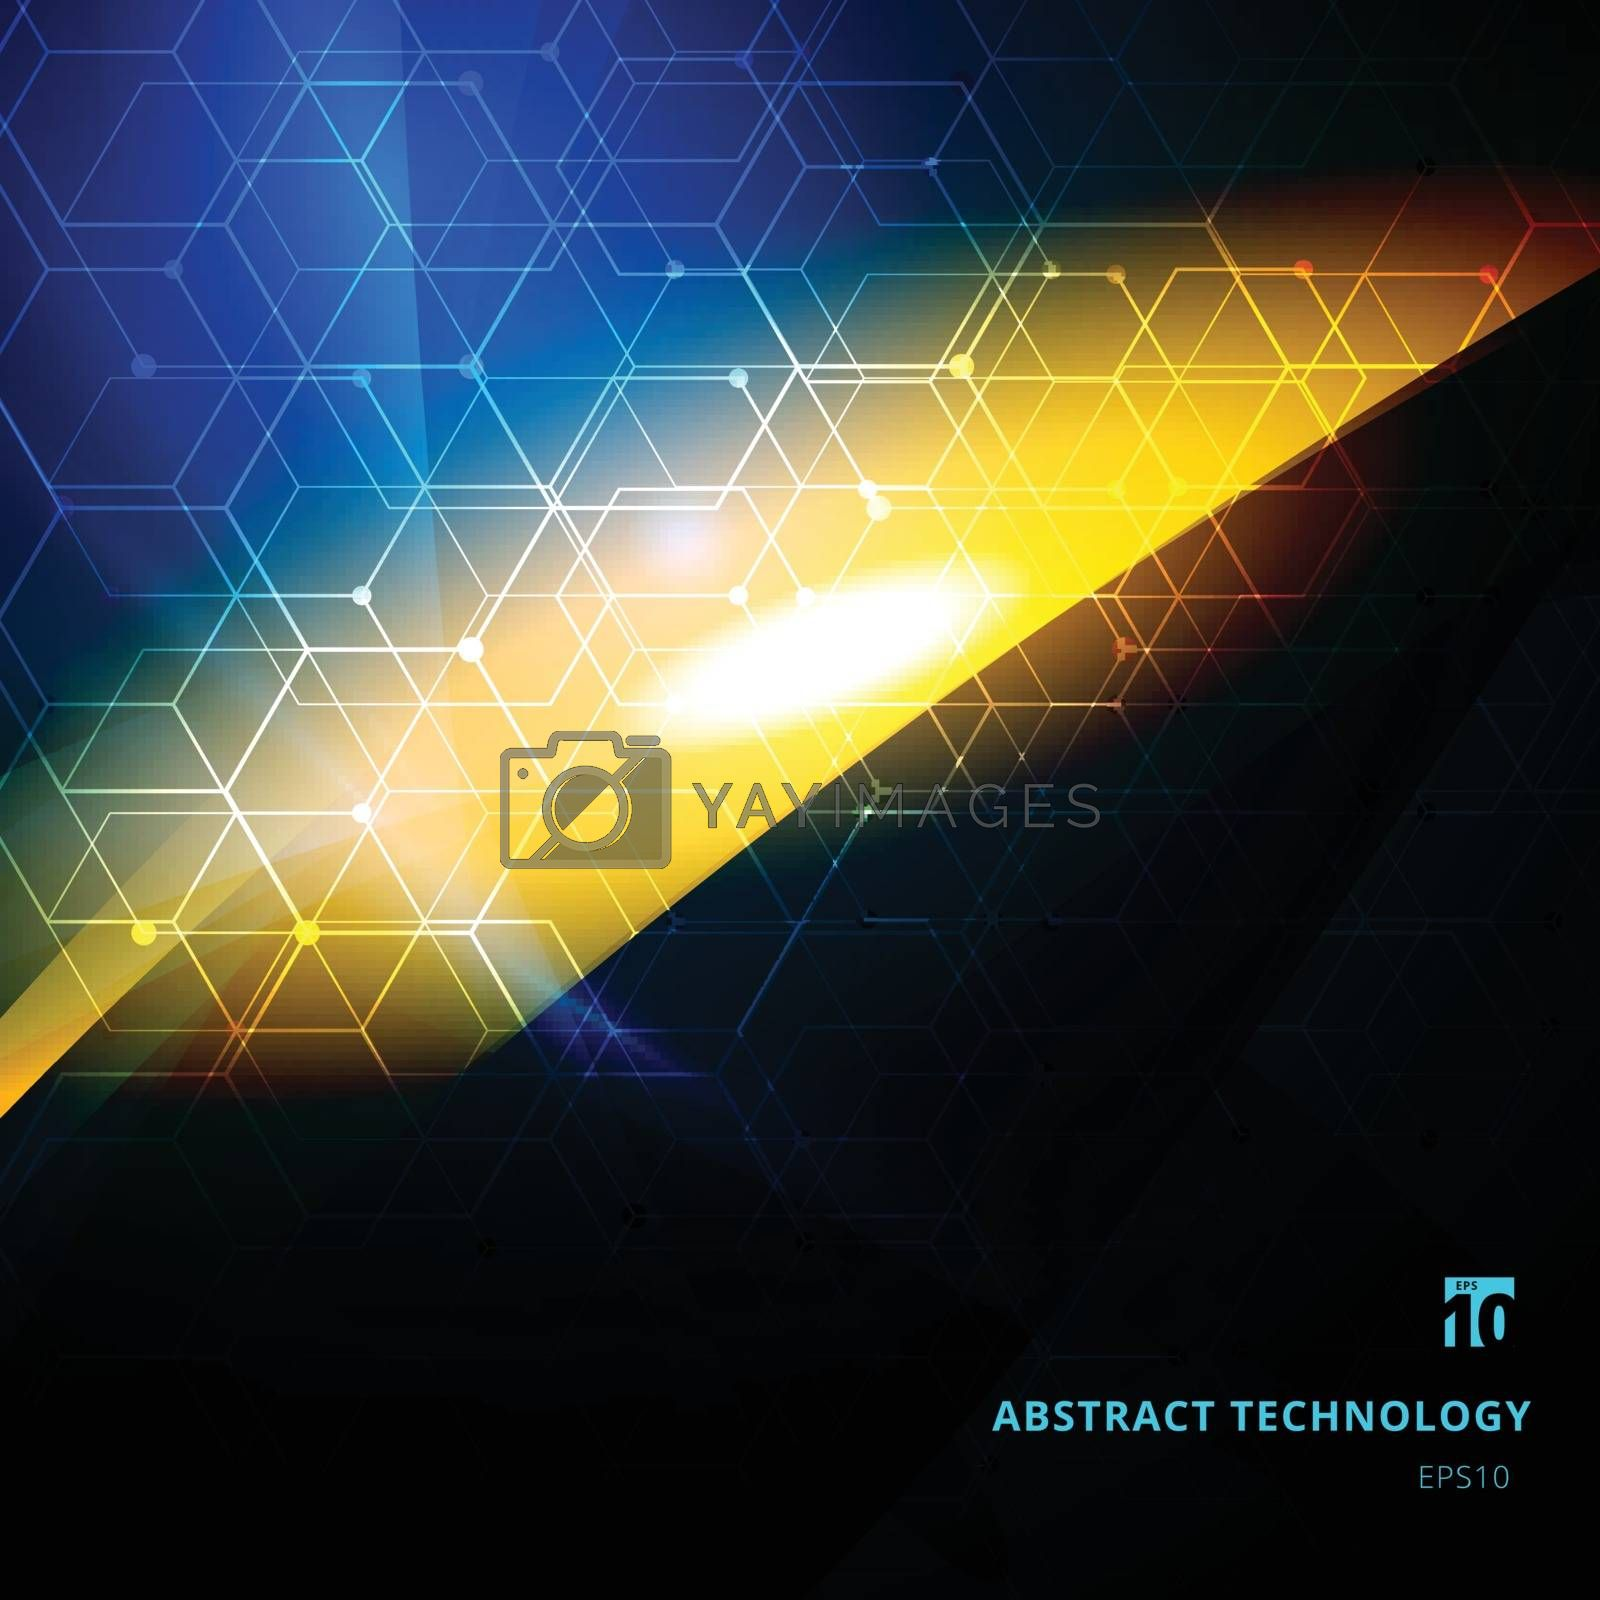 Abstract explosion of light with hexagonal patterns on dark background copy space. Technology digital futuristic style. Vector illustration